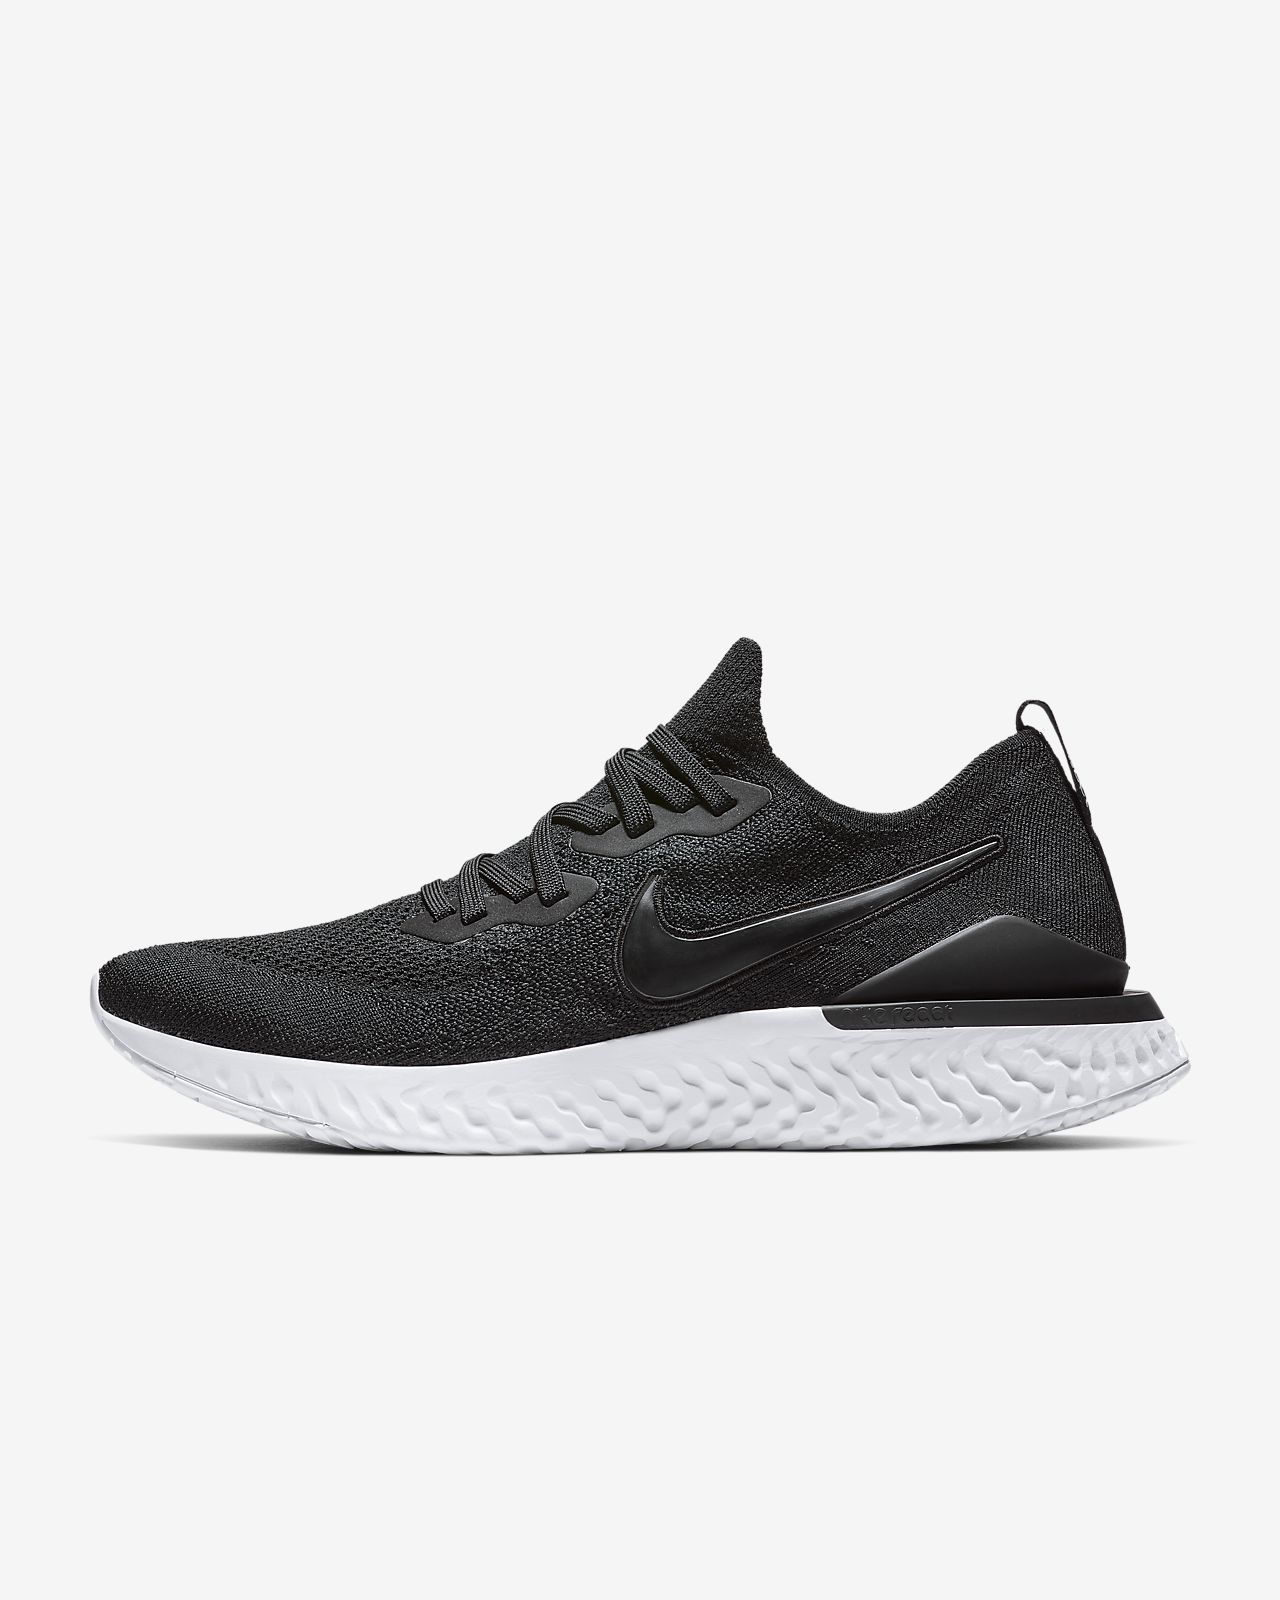 8d01a75f87 Nike Epic React Flyknit 2 Men's Running Shoe. Nike.com AU